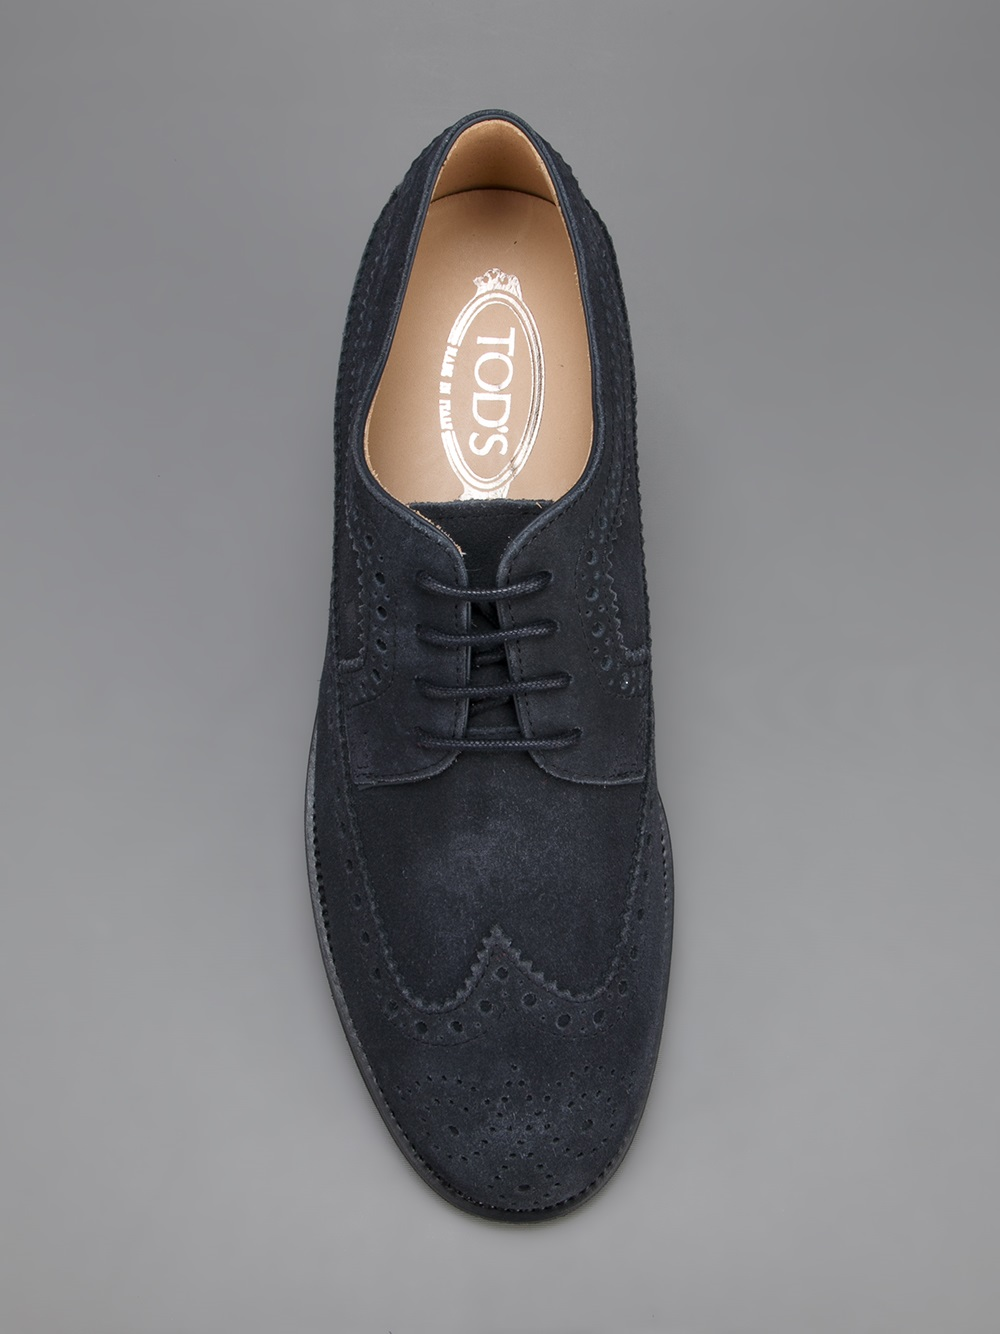 derby shoes - Blue Tod's Shop For For Sale Clearance Find Great Buy Cheap Huge Surprise Buy Cheap Real AWqyPnZD6